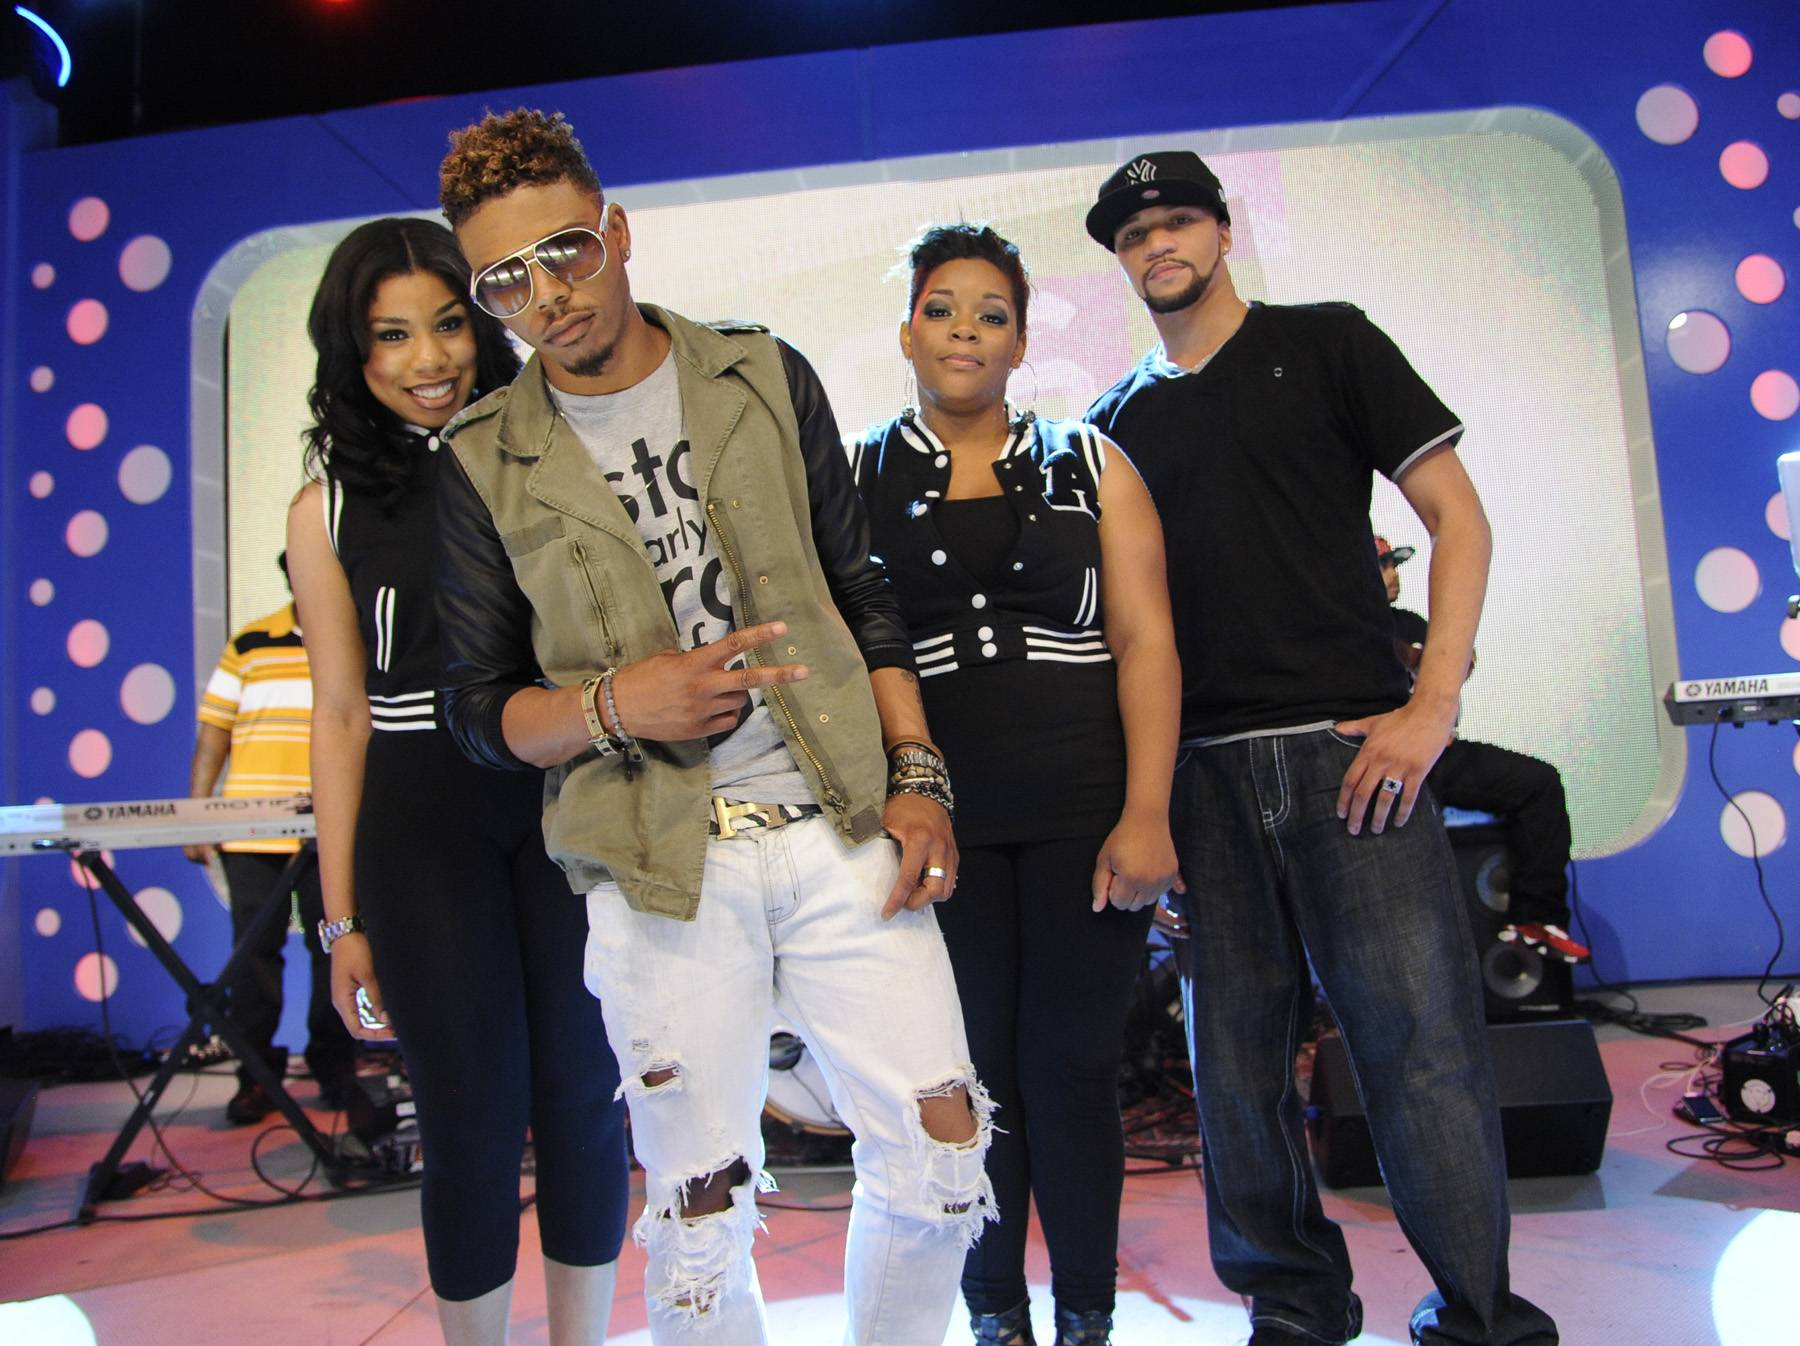 Superstar in the Making - Wild Out Wednesday competitor Eric Mayo at 106 & Park, May 2, 2012. (Photo: John Ricard/BET)